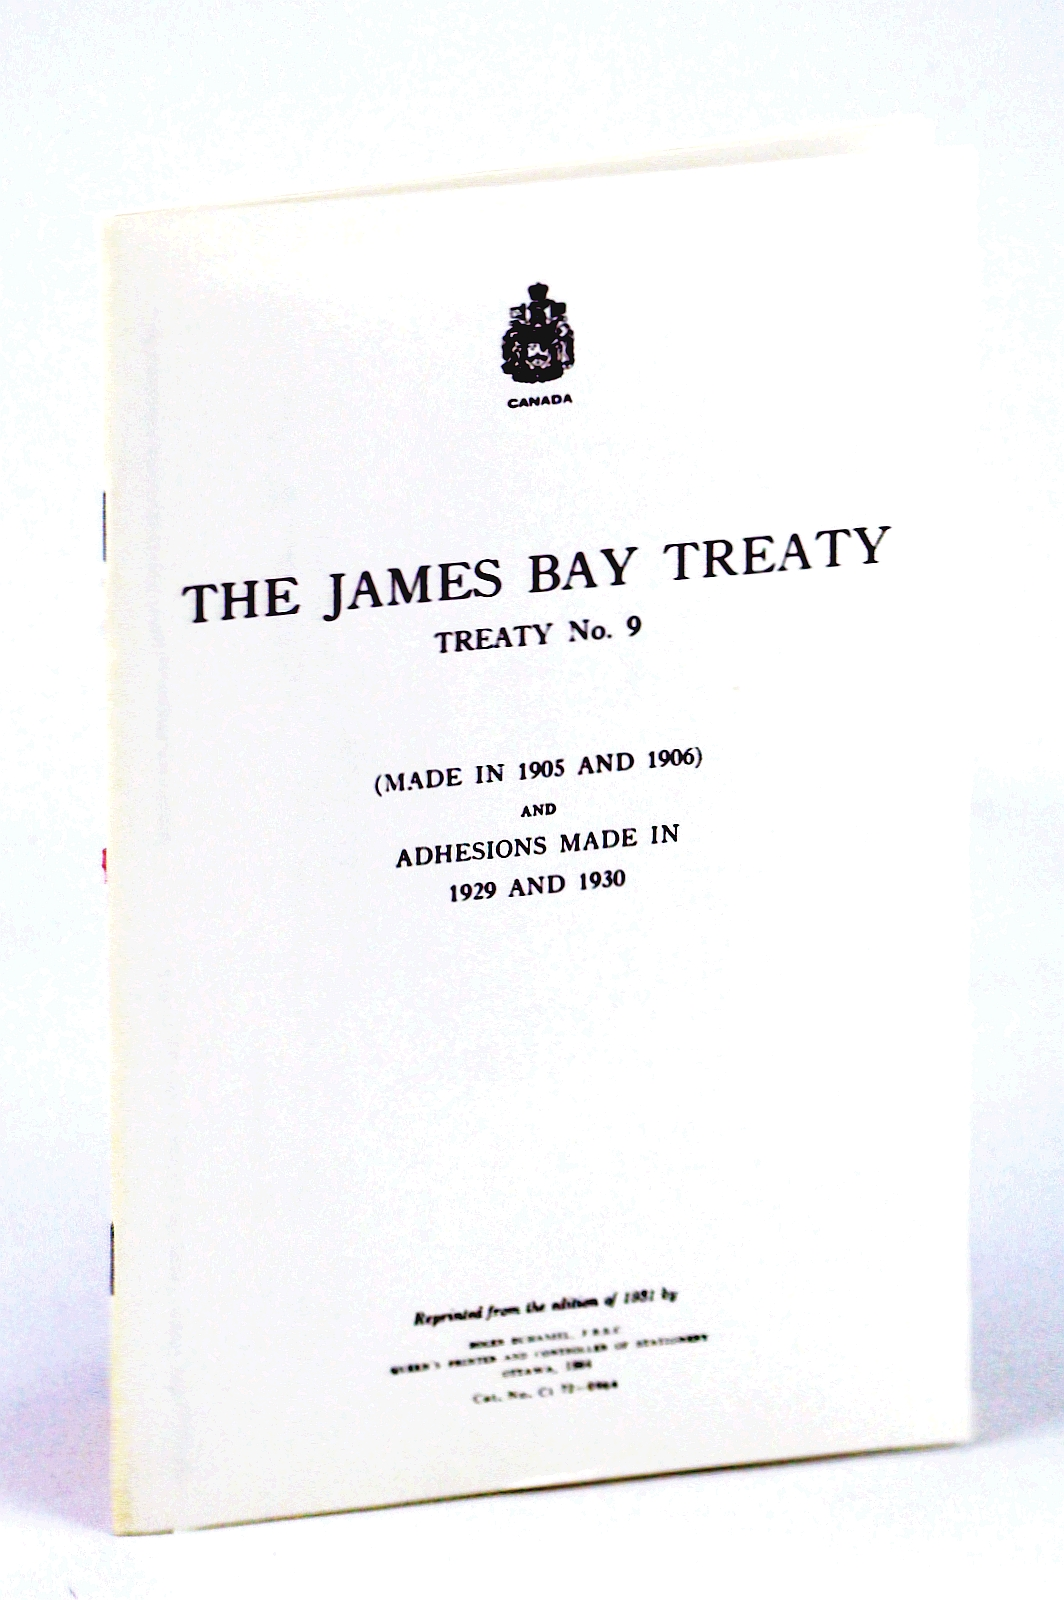 Image for The James Bay Treaty, Treaty Number (No.) 9 (Nine) (Made in 1905 and 1906) and Adhesions Made in 1929 and 1930